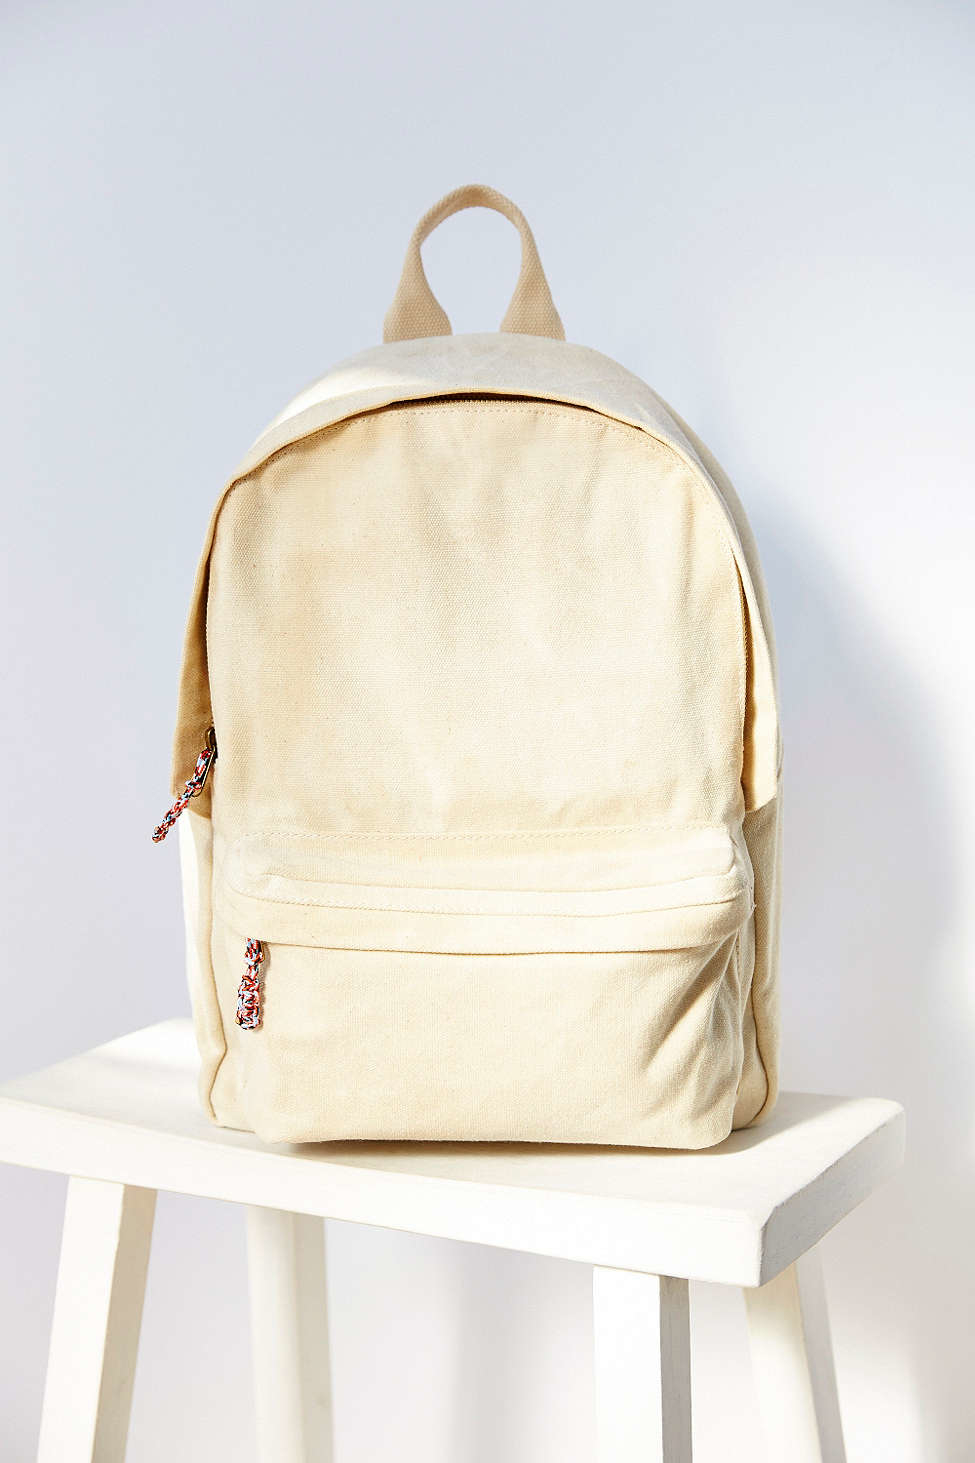 ad0735b048ac Lyst - BDG Canvas Backpack in Natural